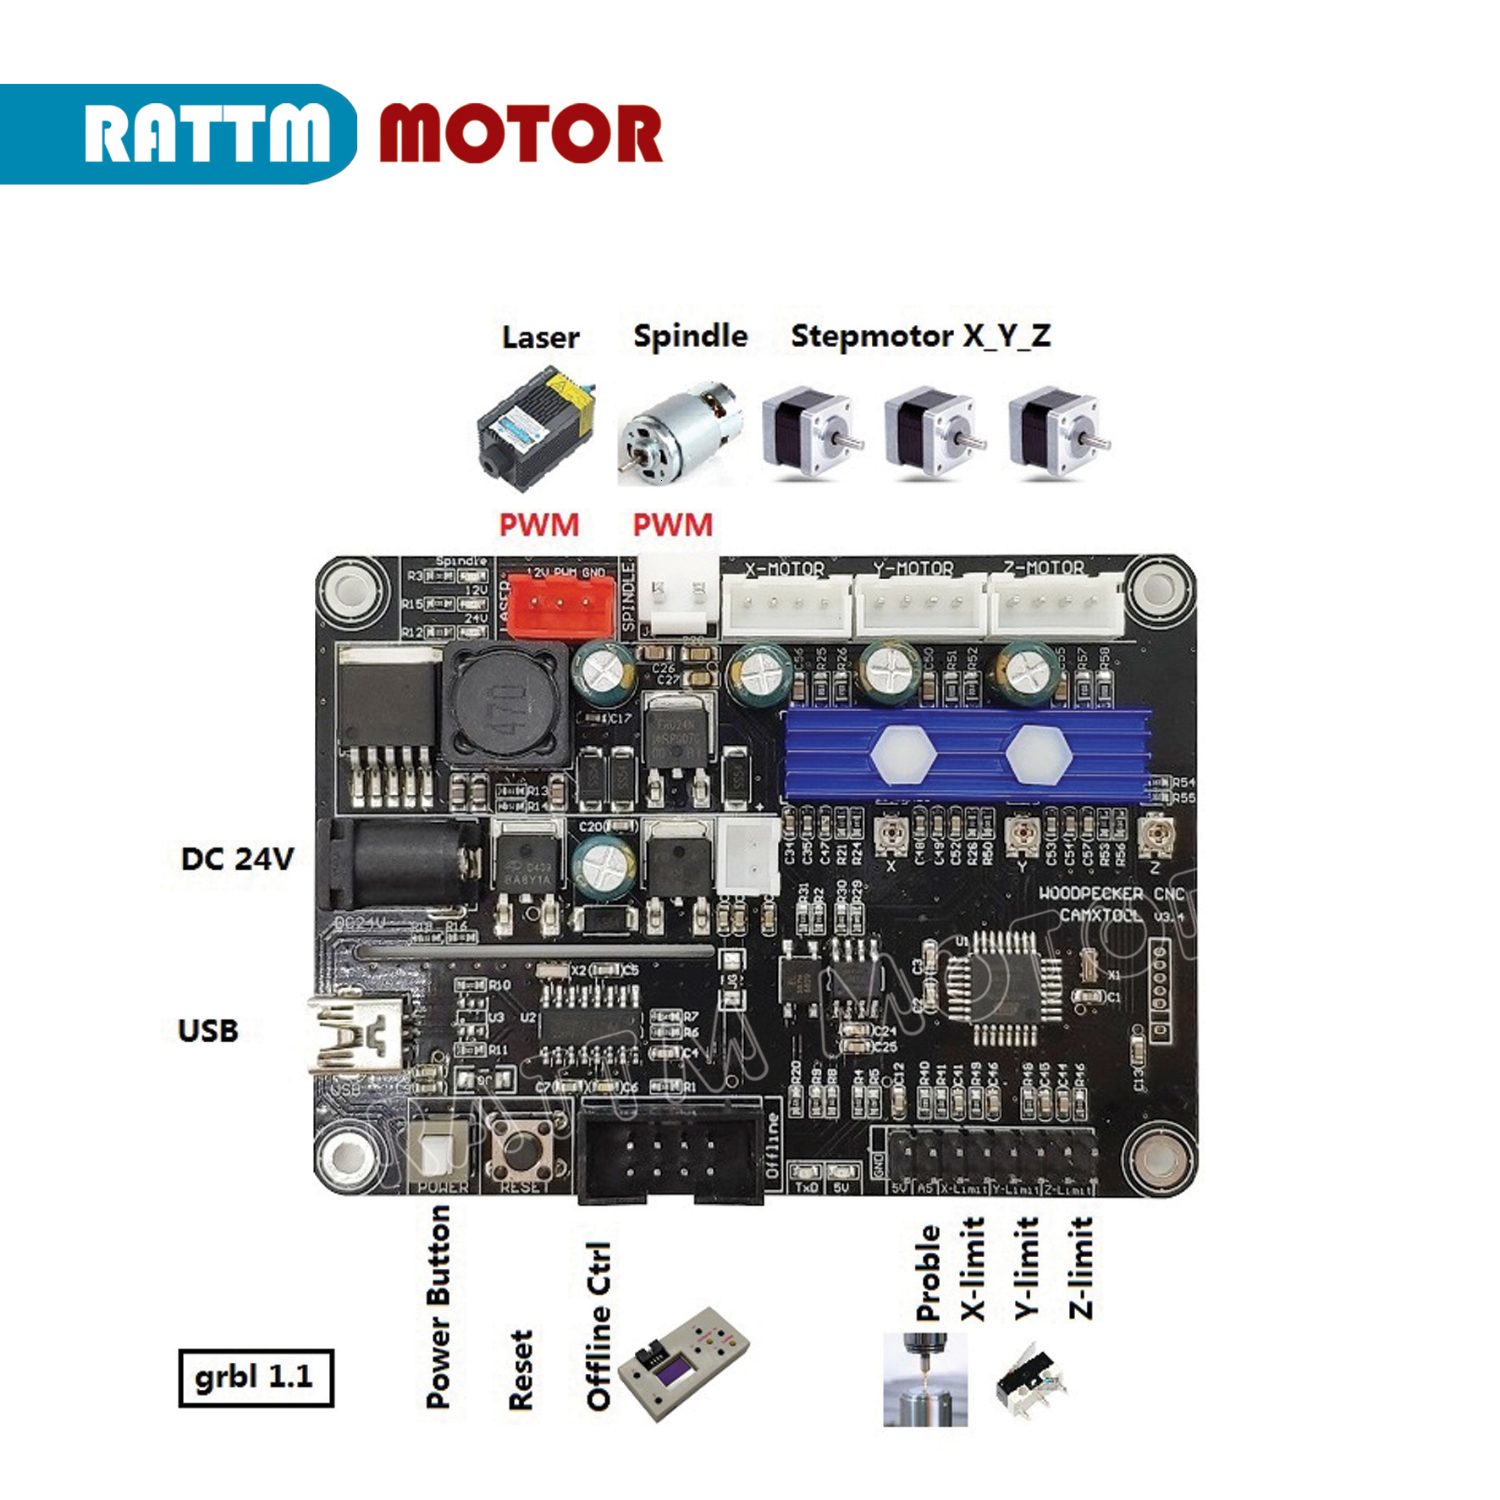 3 Axis GRBL 1.1f USB Port <font><b>CNC</b></font> <font><b>Router</b></font> Engraving Machine Controller Board <font><b>2418</b></font> 3018 <font><b>CNC</b></font> <font><b>Router</b></font> control card support laser image